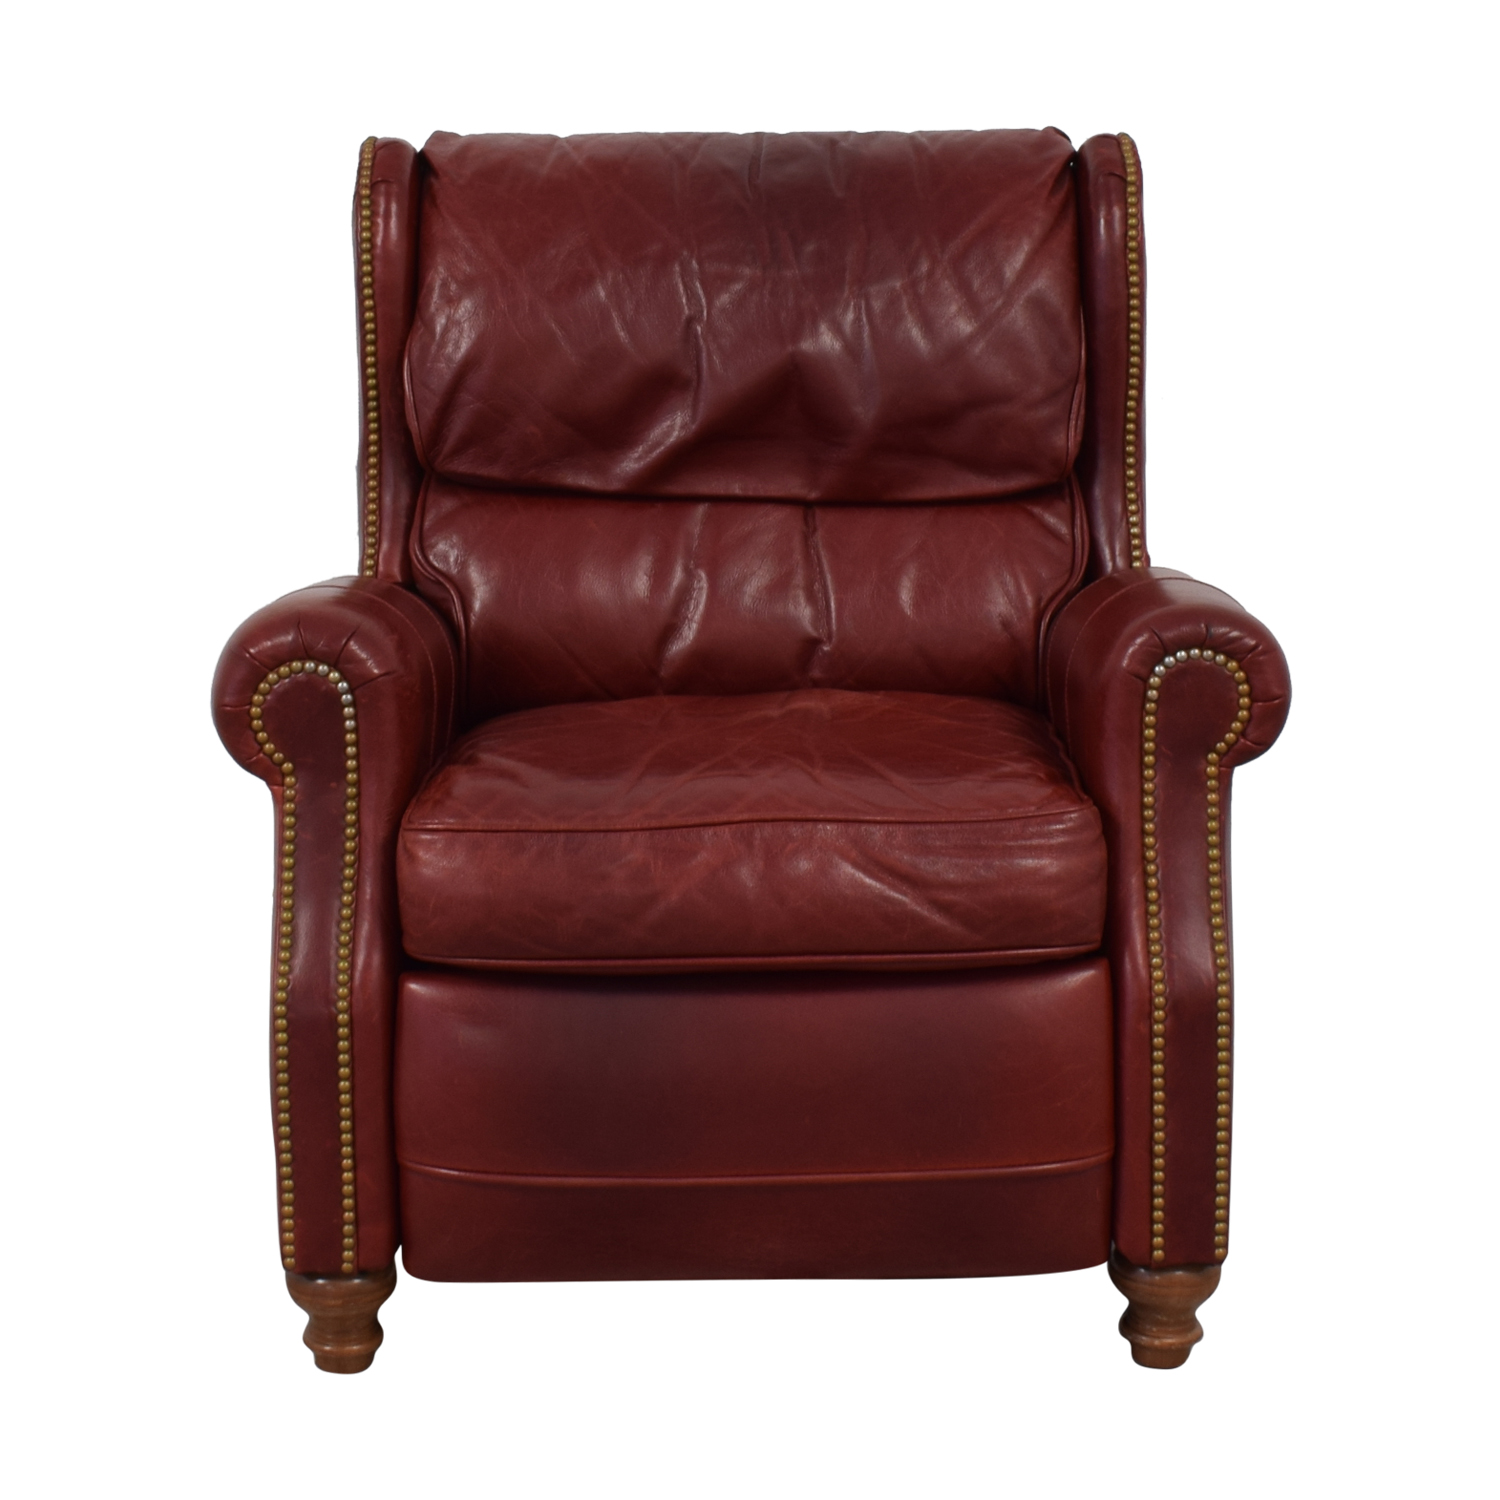 McKinley Leather Recliner / Chairs